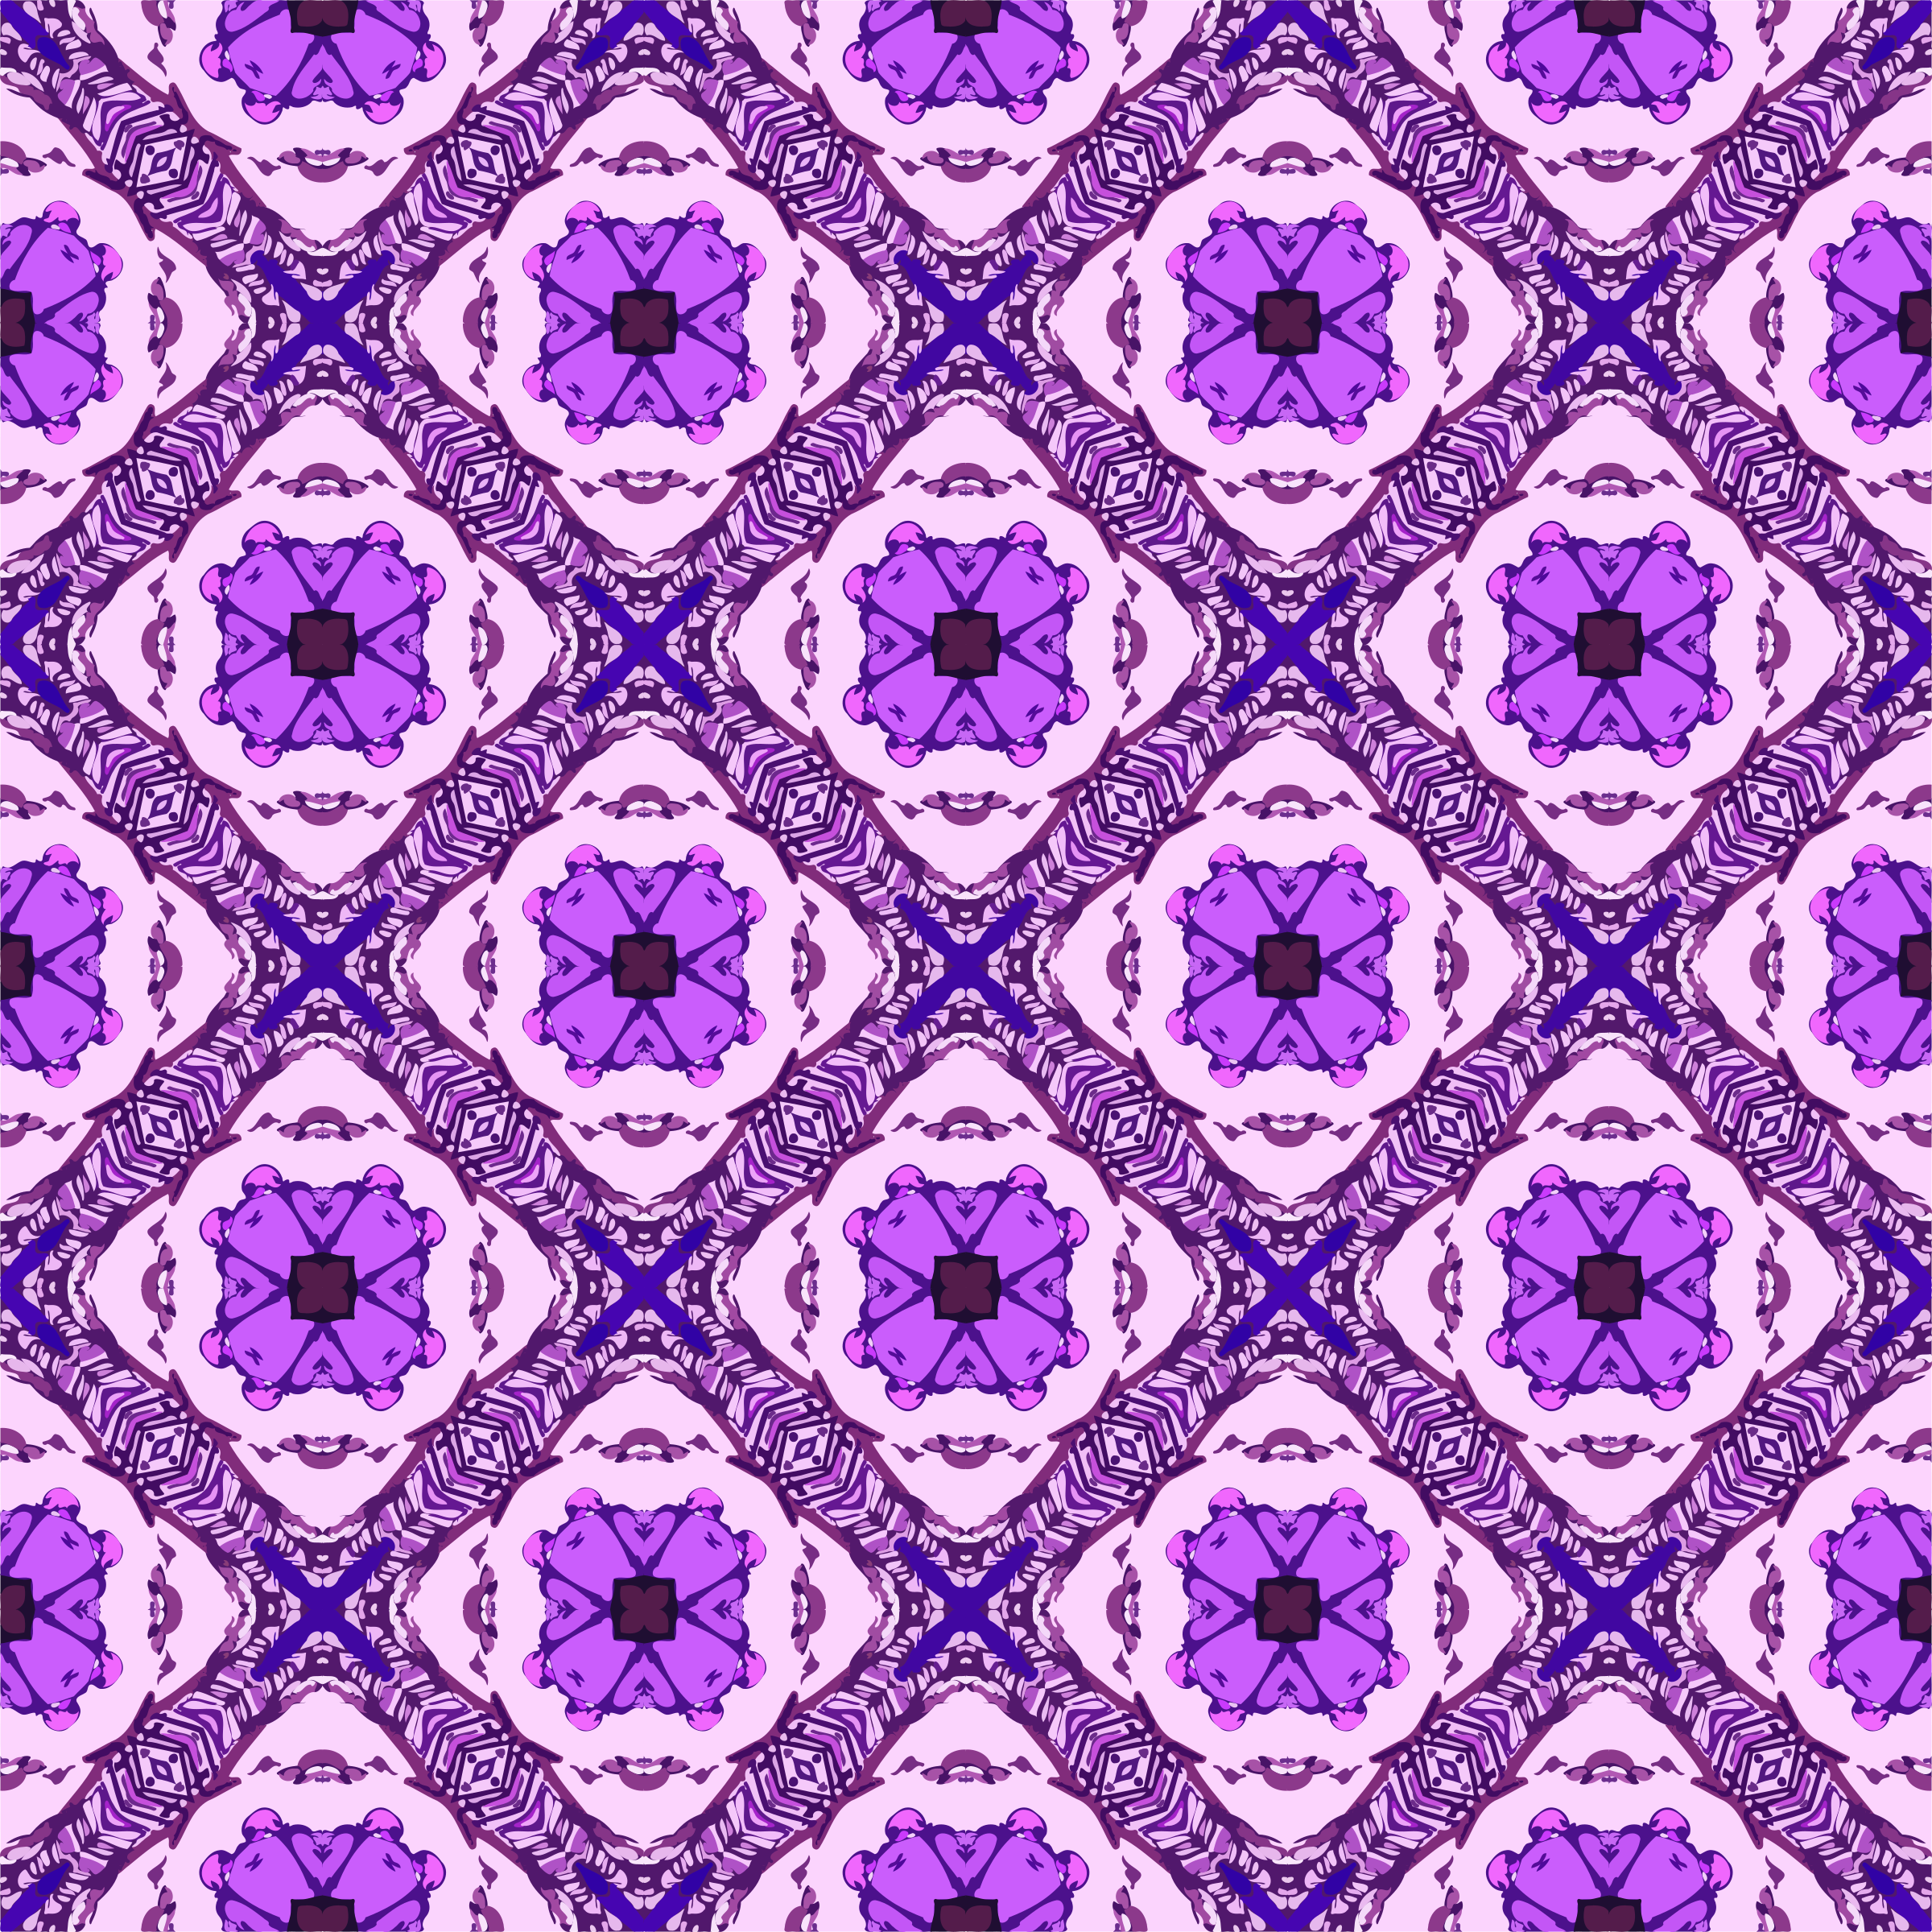 Background pattern 152 (colour 5) by Firkin